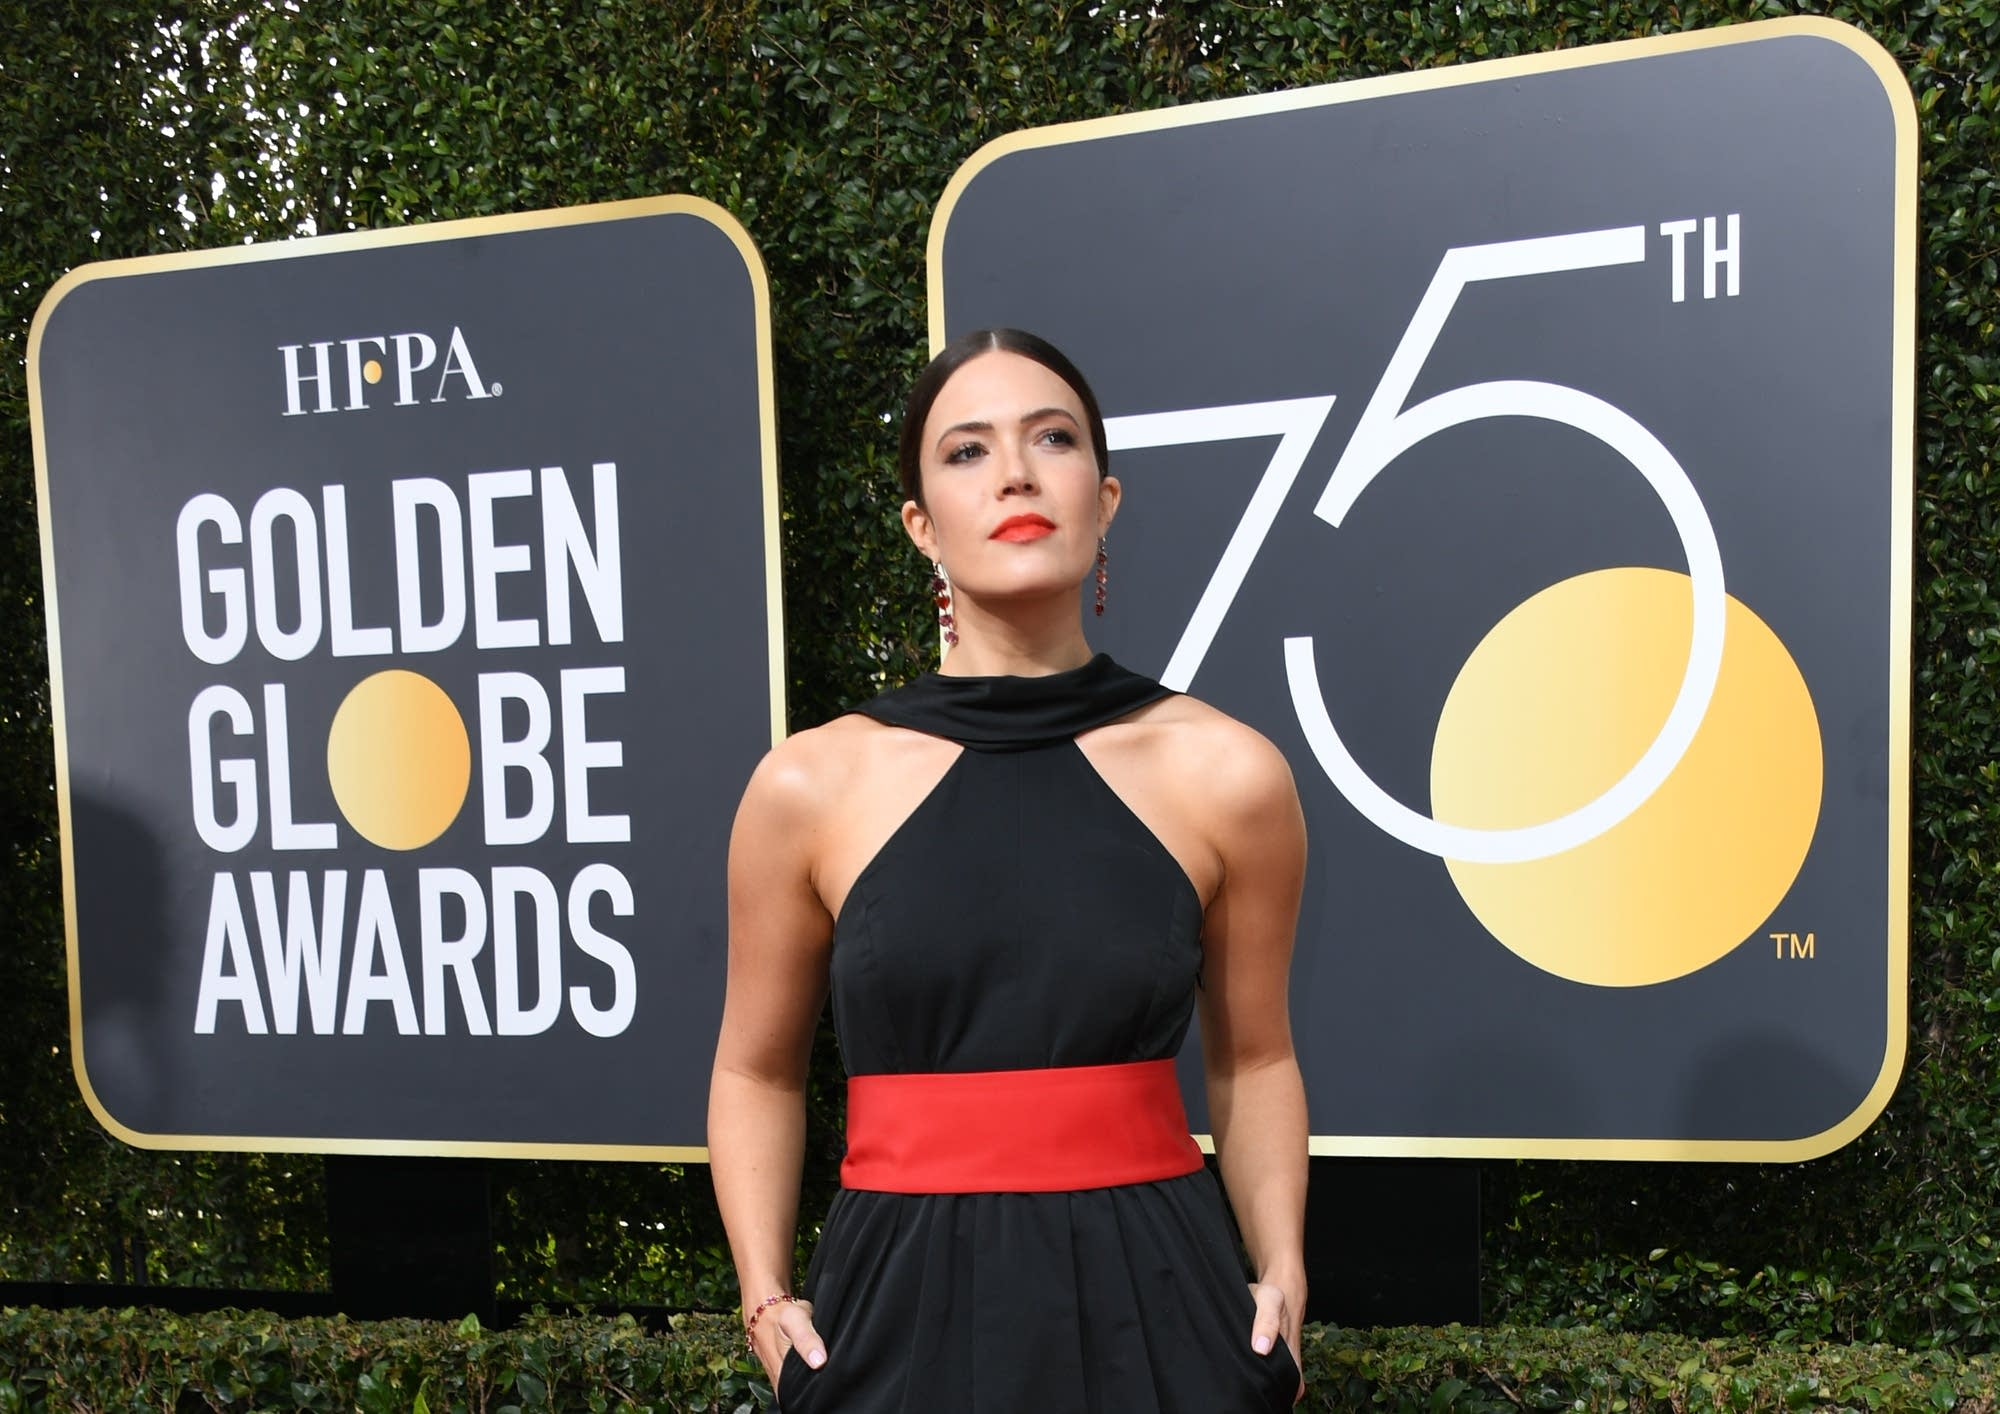 Mandy Moore on arrives for the 75th Golden Globe awards.